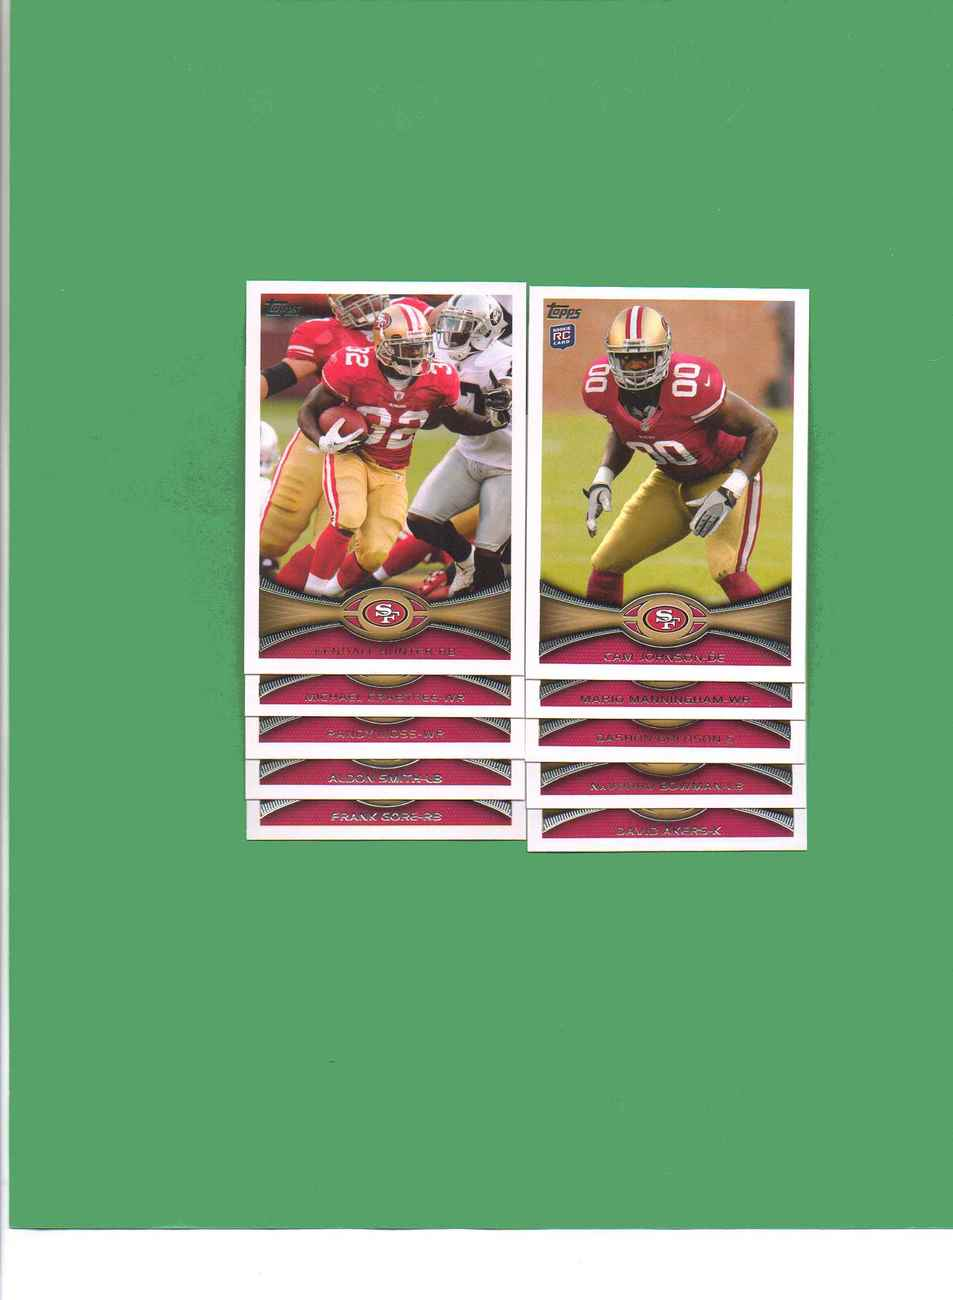 Primary image for 2012 Topps San Francisco 49ers Football Set